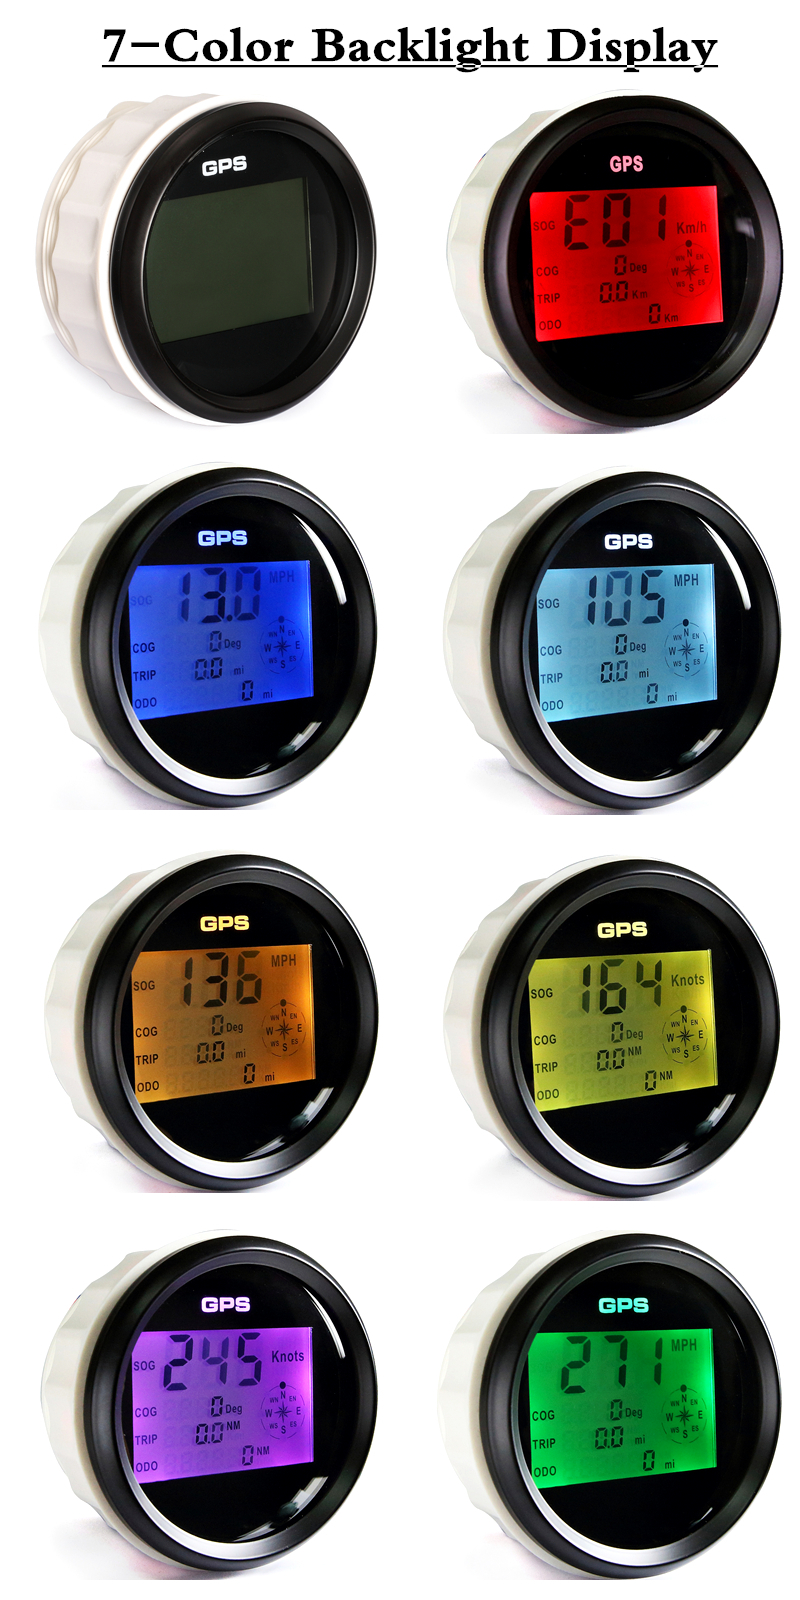 Waterproof Digital GPS Speedometer Odometer For Auto Marine Truck With 7 Color Backlight 3-3/8'' (85mm) 9-32V 6